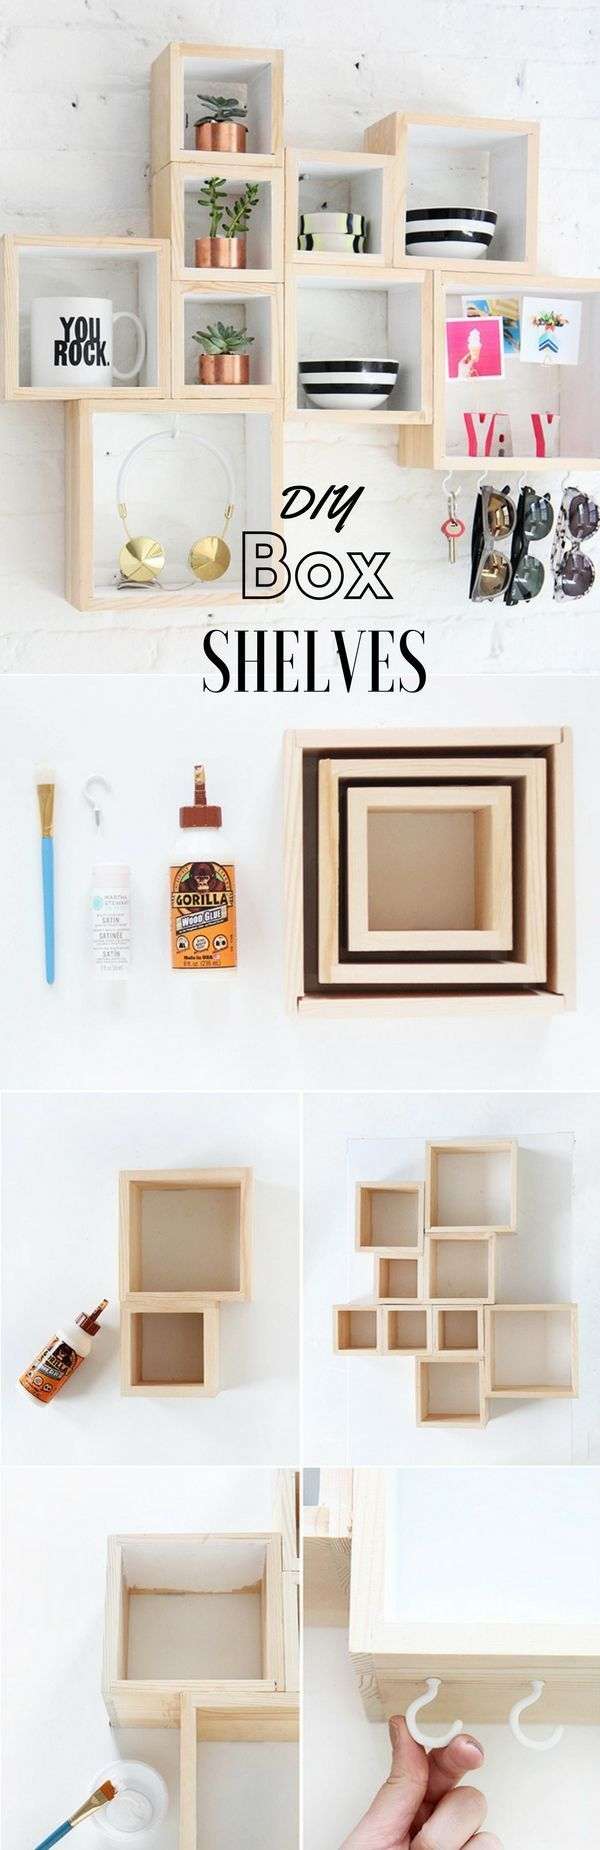 DIY Room Decor: How to express yourself without spending too much